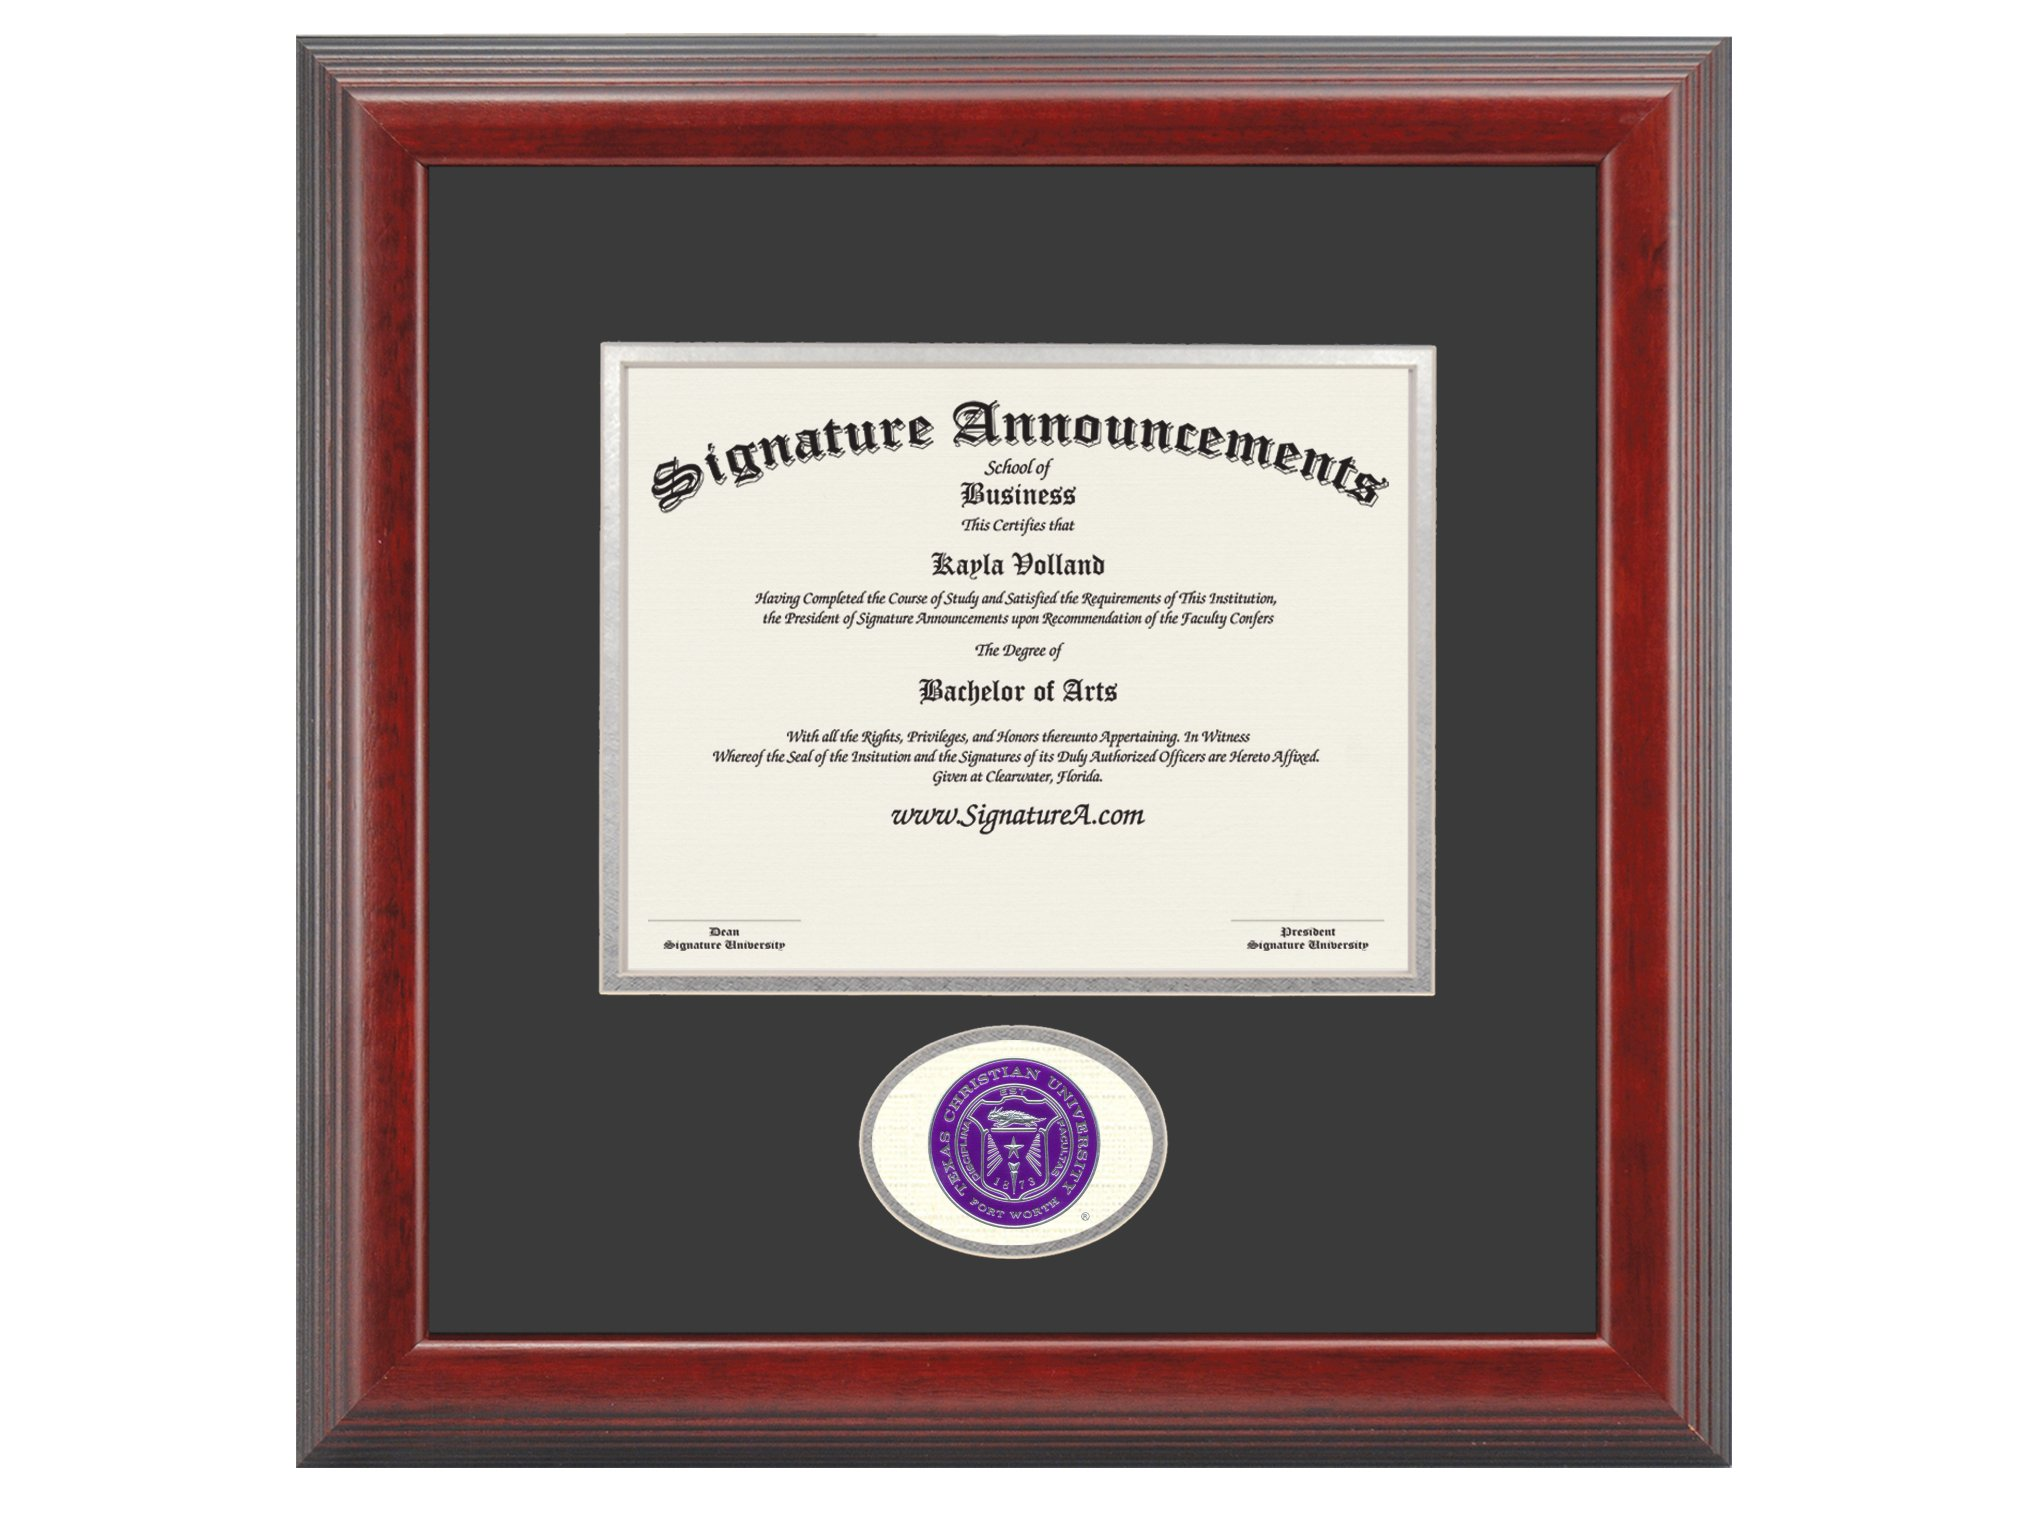 Signature Announcements Texas Christian University (TCU) Undergraduate and Graduate/Professional/Doctor Graduation Diploma Frame with Sculpted Foil Seal (Cherry, 16 x 16) by Signature Announcements